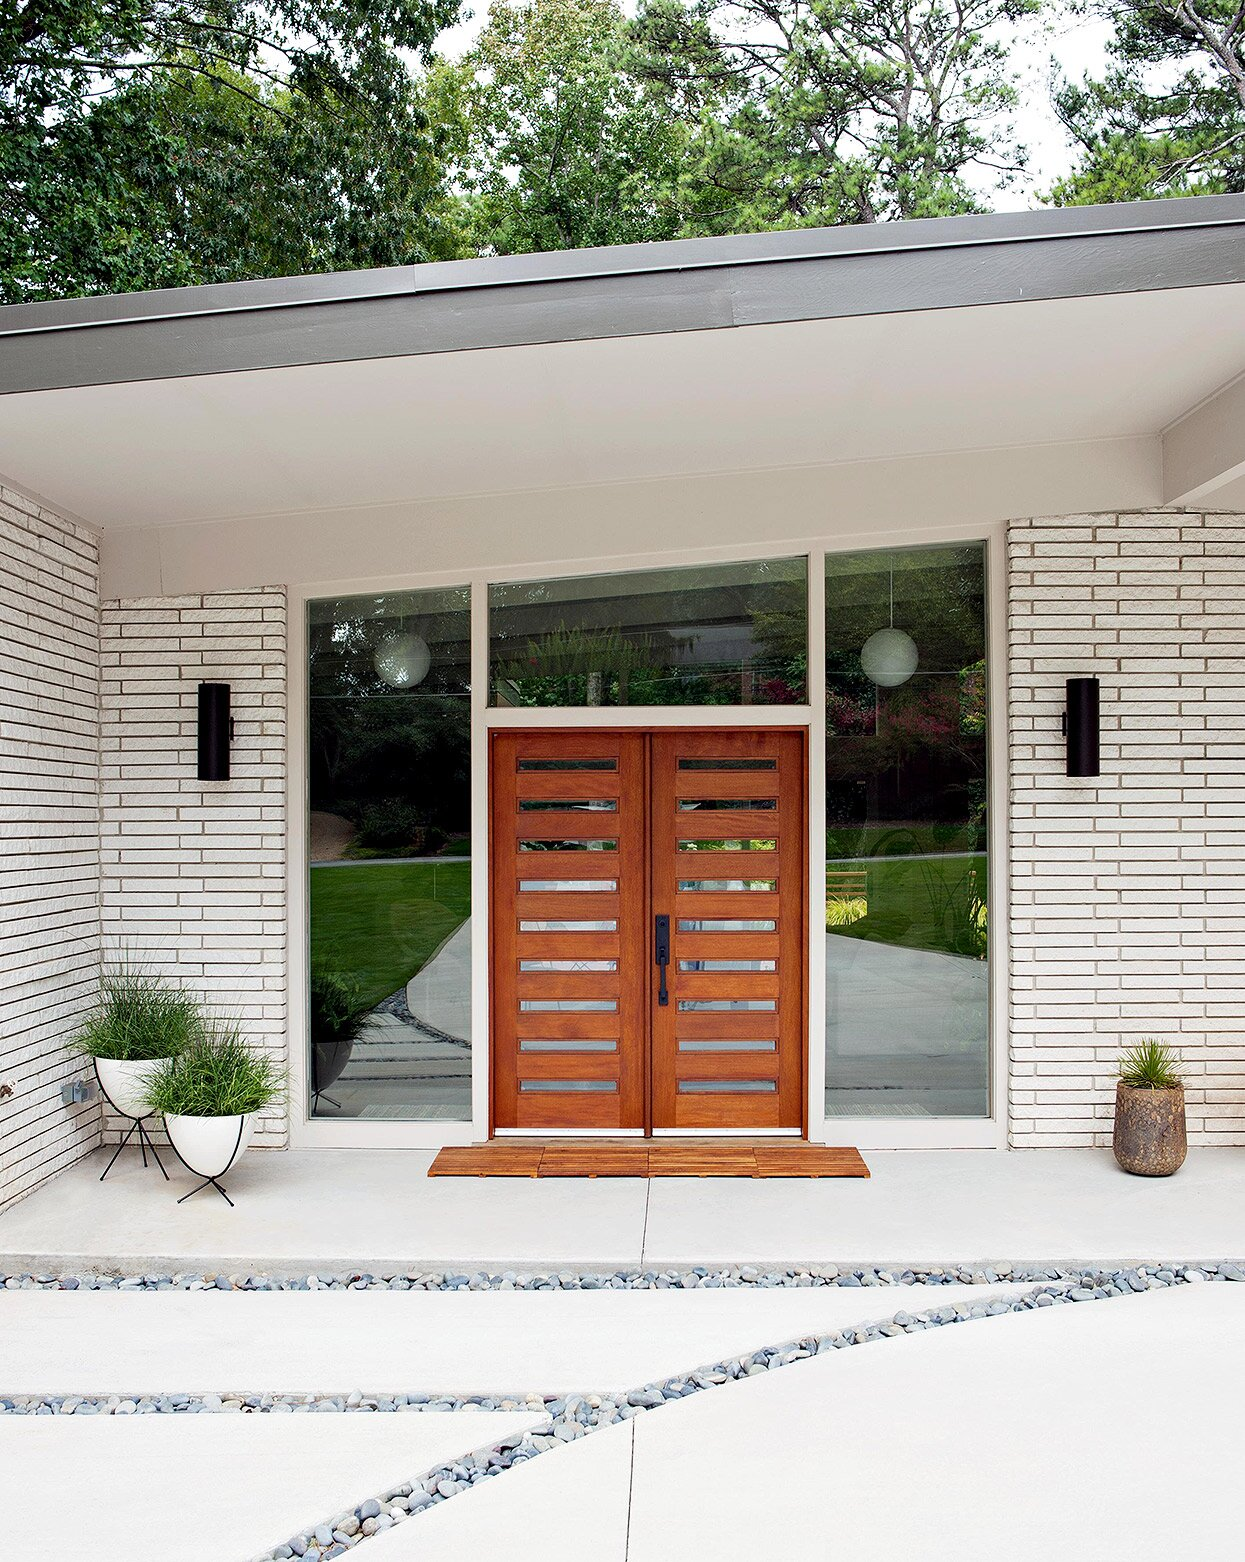 painted brick exterior of midcentury-modern home with wood front doors